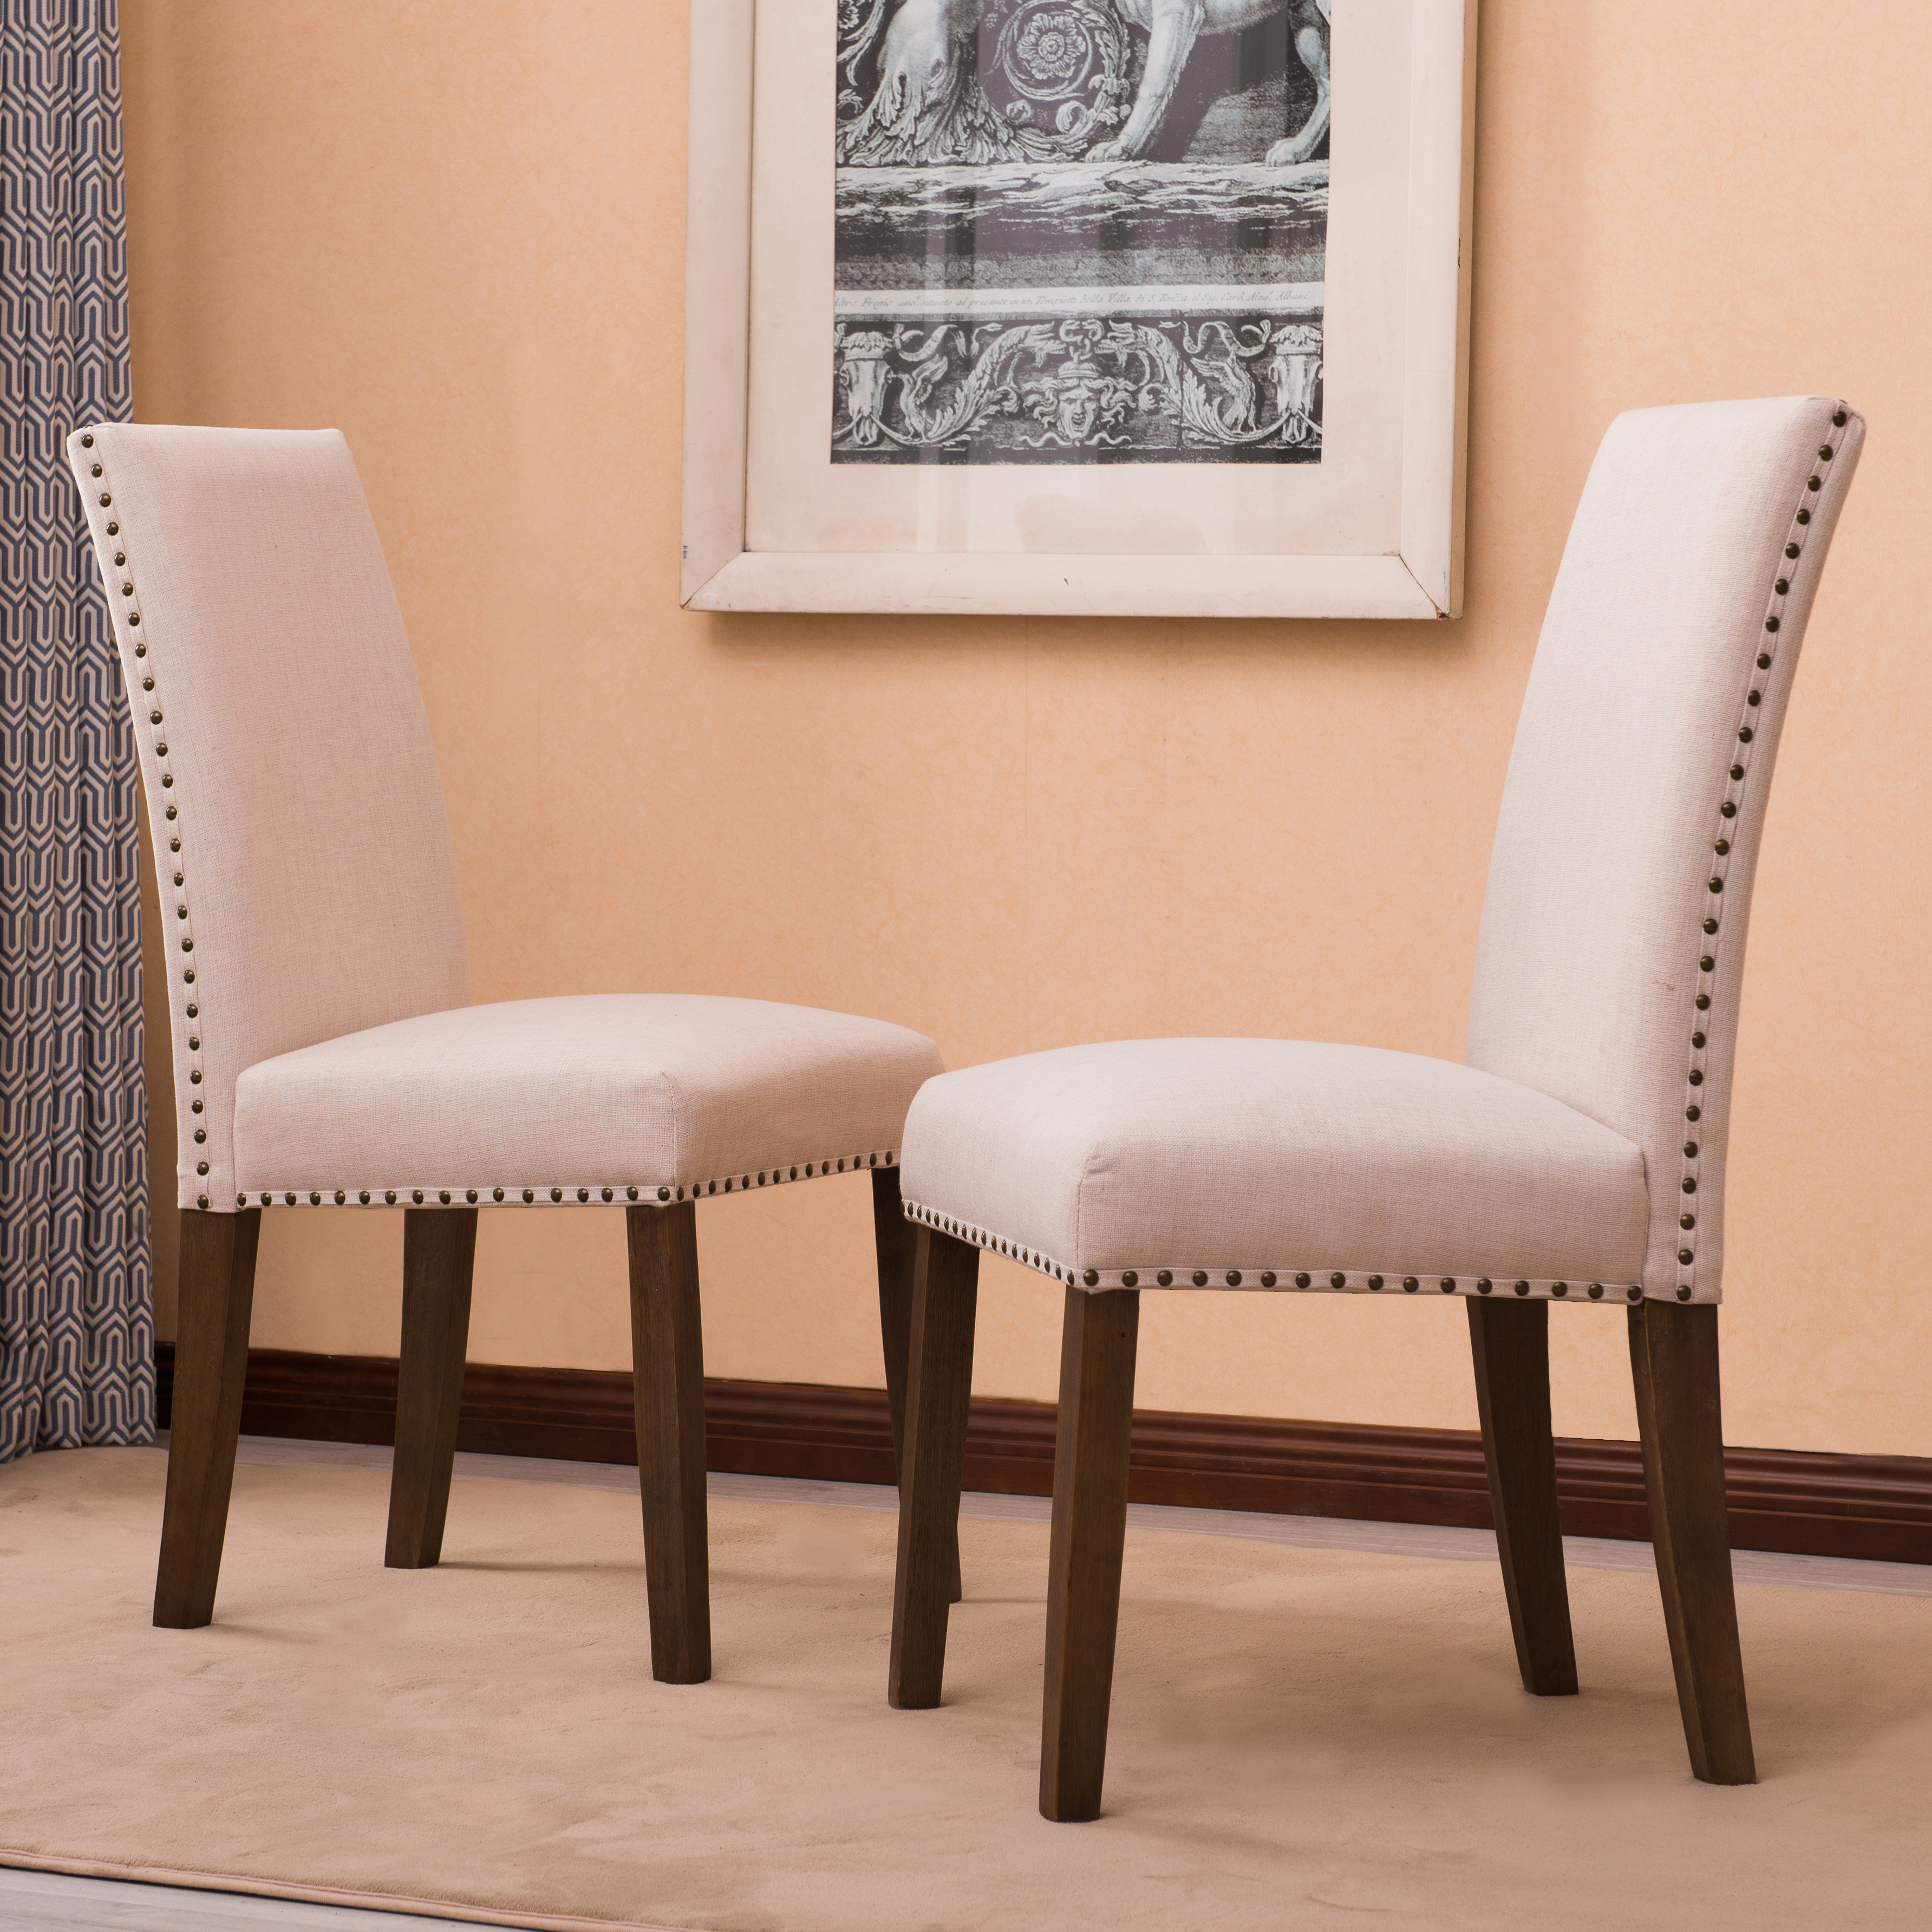 Details about Set of (2) Modern Contemporary Elegant Linen Parson Dining  Chairs (Gray / Beige)